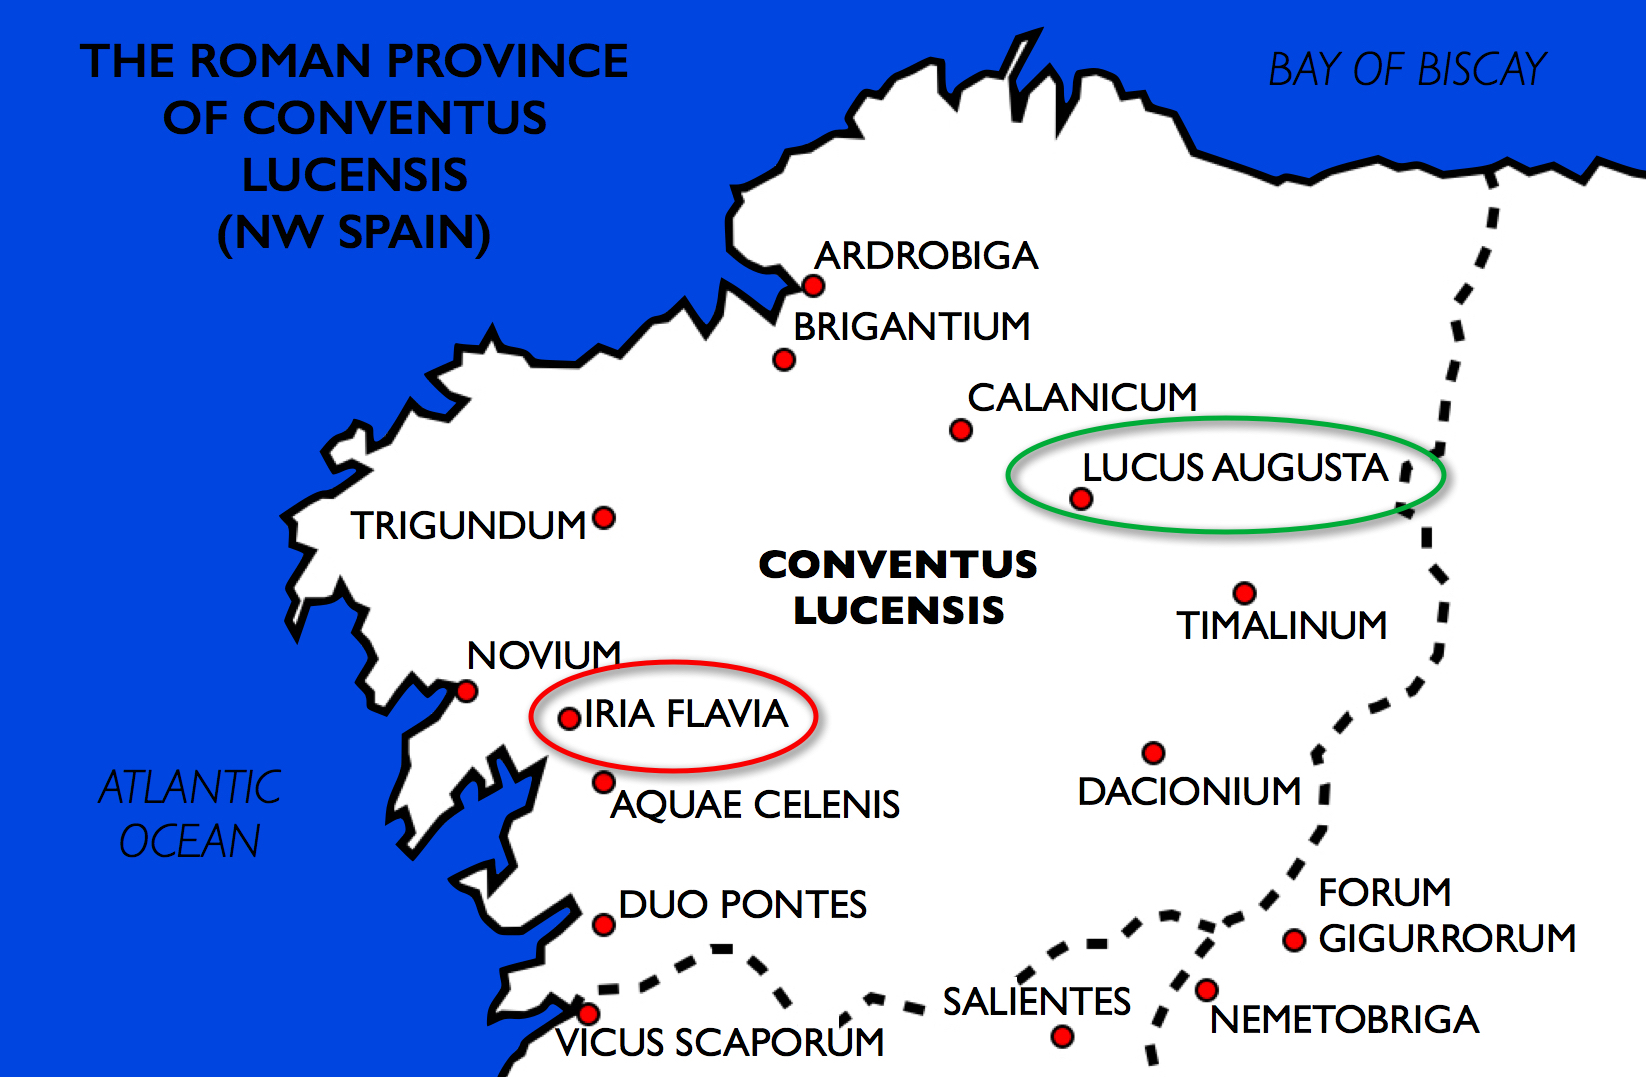 The Roman administrative district of Conventus Lucensis occupies the northwest corner of the Iberian peninsula. Lucus Augusta was the primary administrative center. Iria Flavia was an inland port resting at the confluence of navigable rivers.